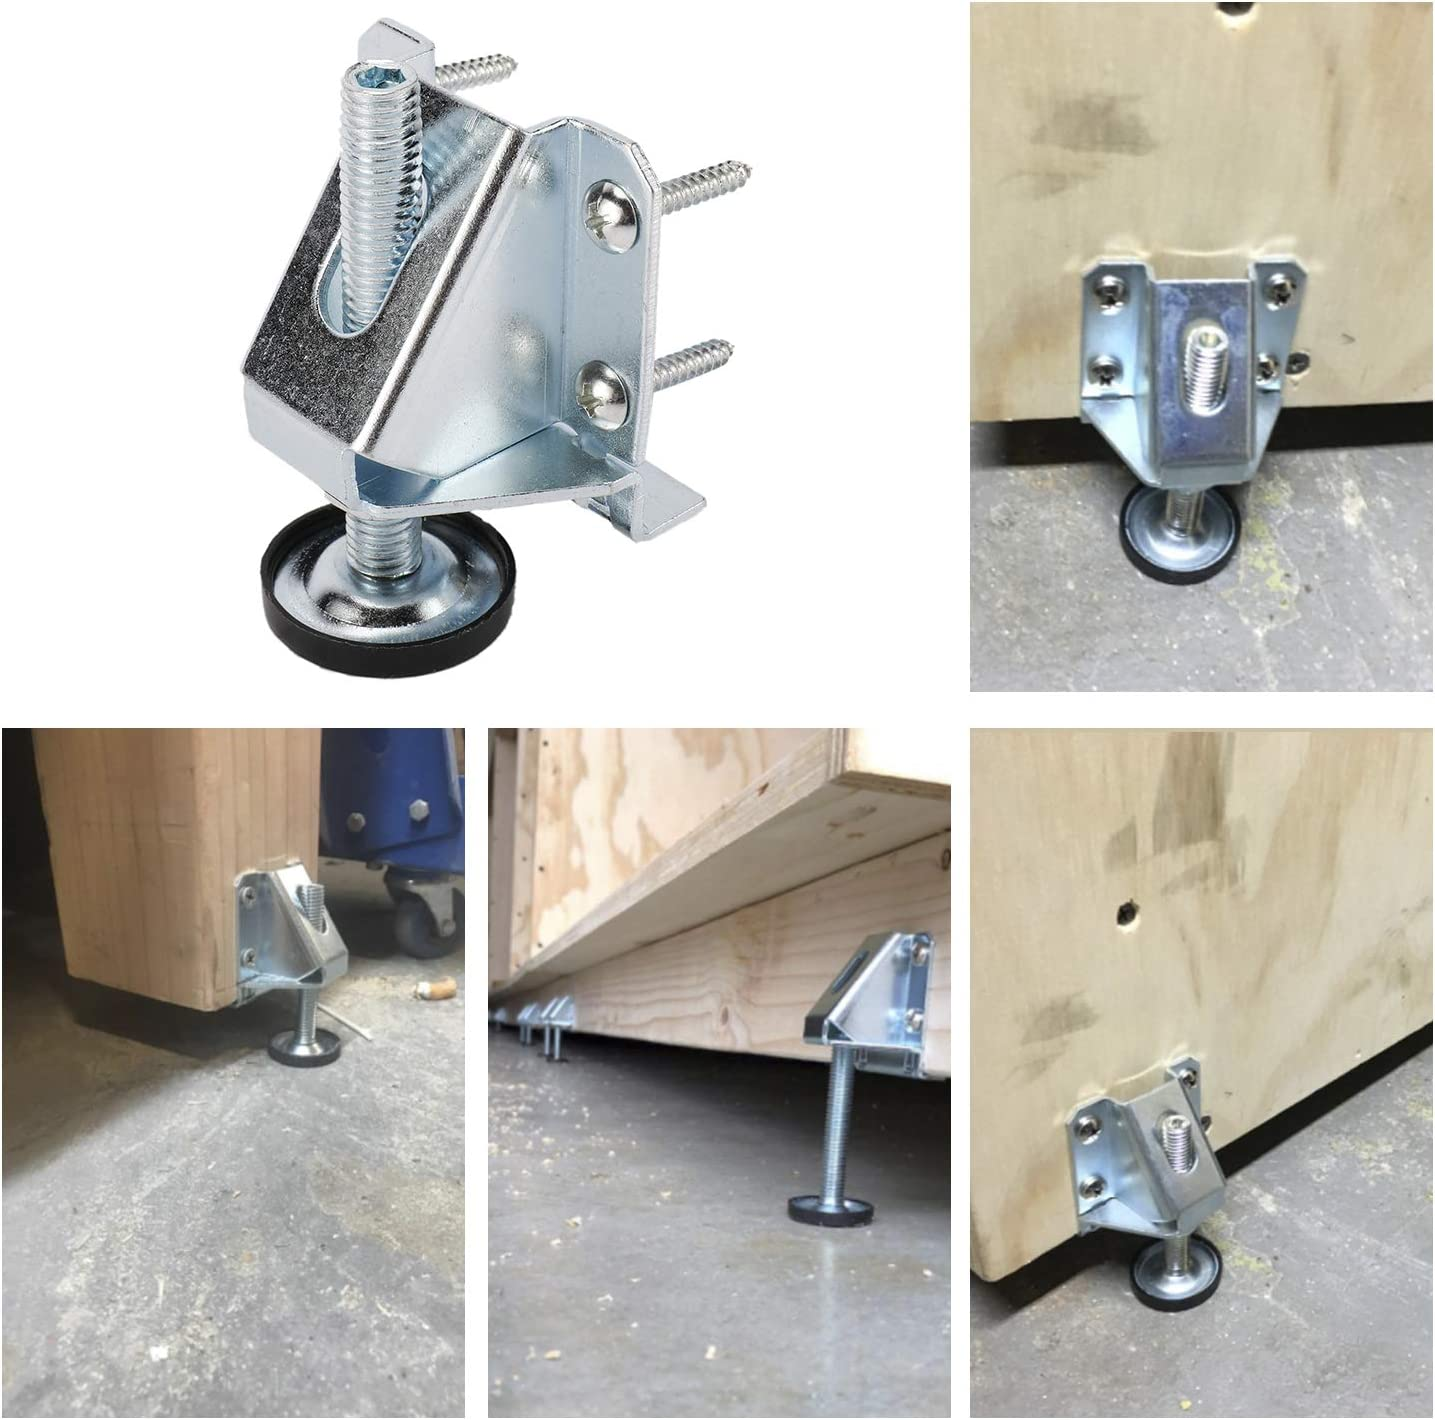 Details about 8 Pack Heavy Duty Leveler Legs with Lock Nuts Adjustable  Furniture Levelers